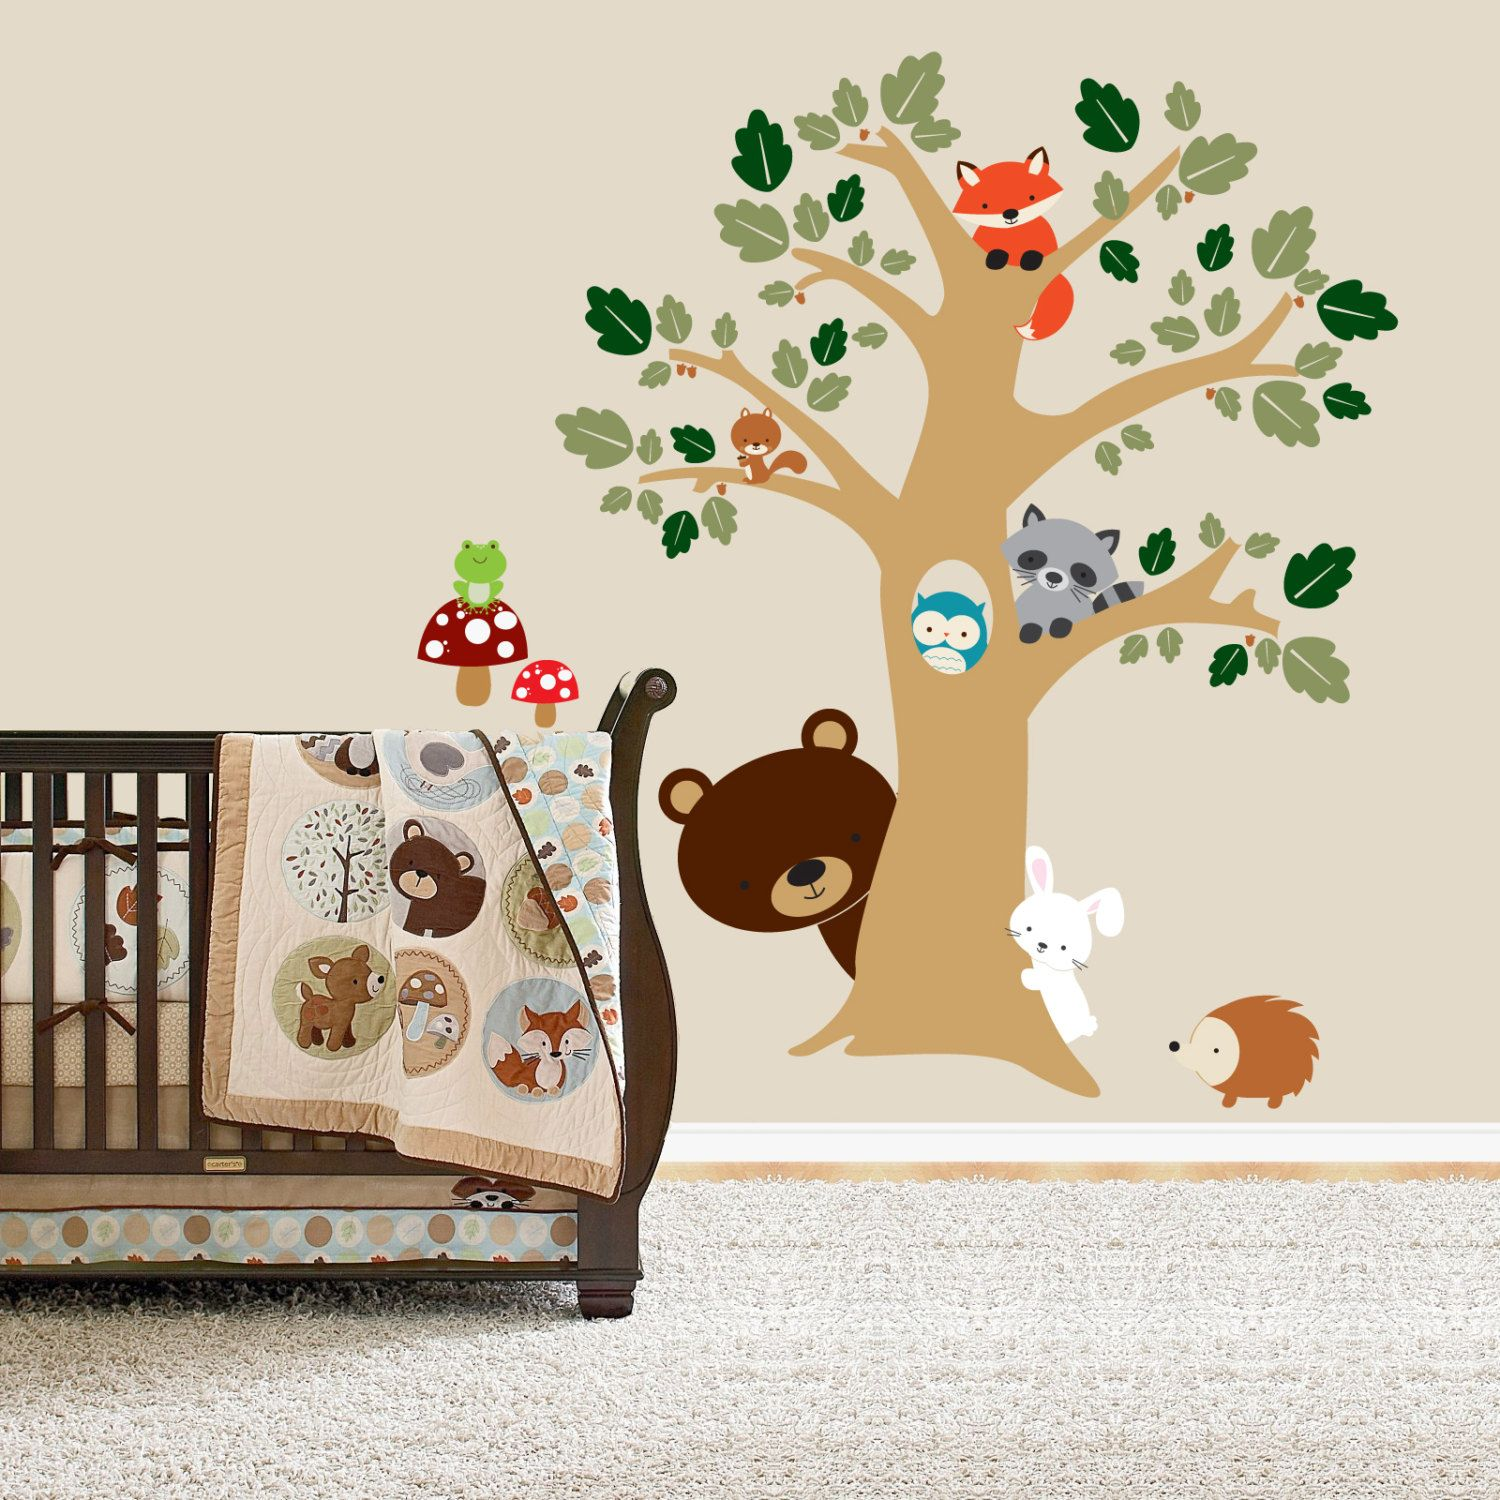 Forest Friends Room Peek a Boo Tree Woodland Animals Decal Nursery Wall Vinyl. $75.00 via Etsy.  sc 1 st  Pinterest & Forest Friends Room Peek a Boo Tree Woodland Animals Decal Nursery ...